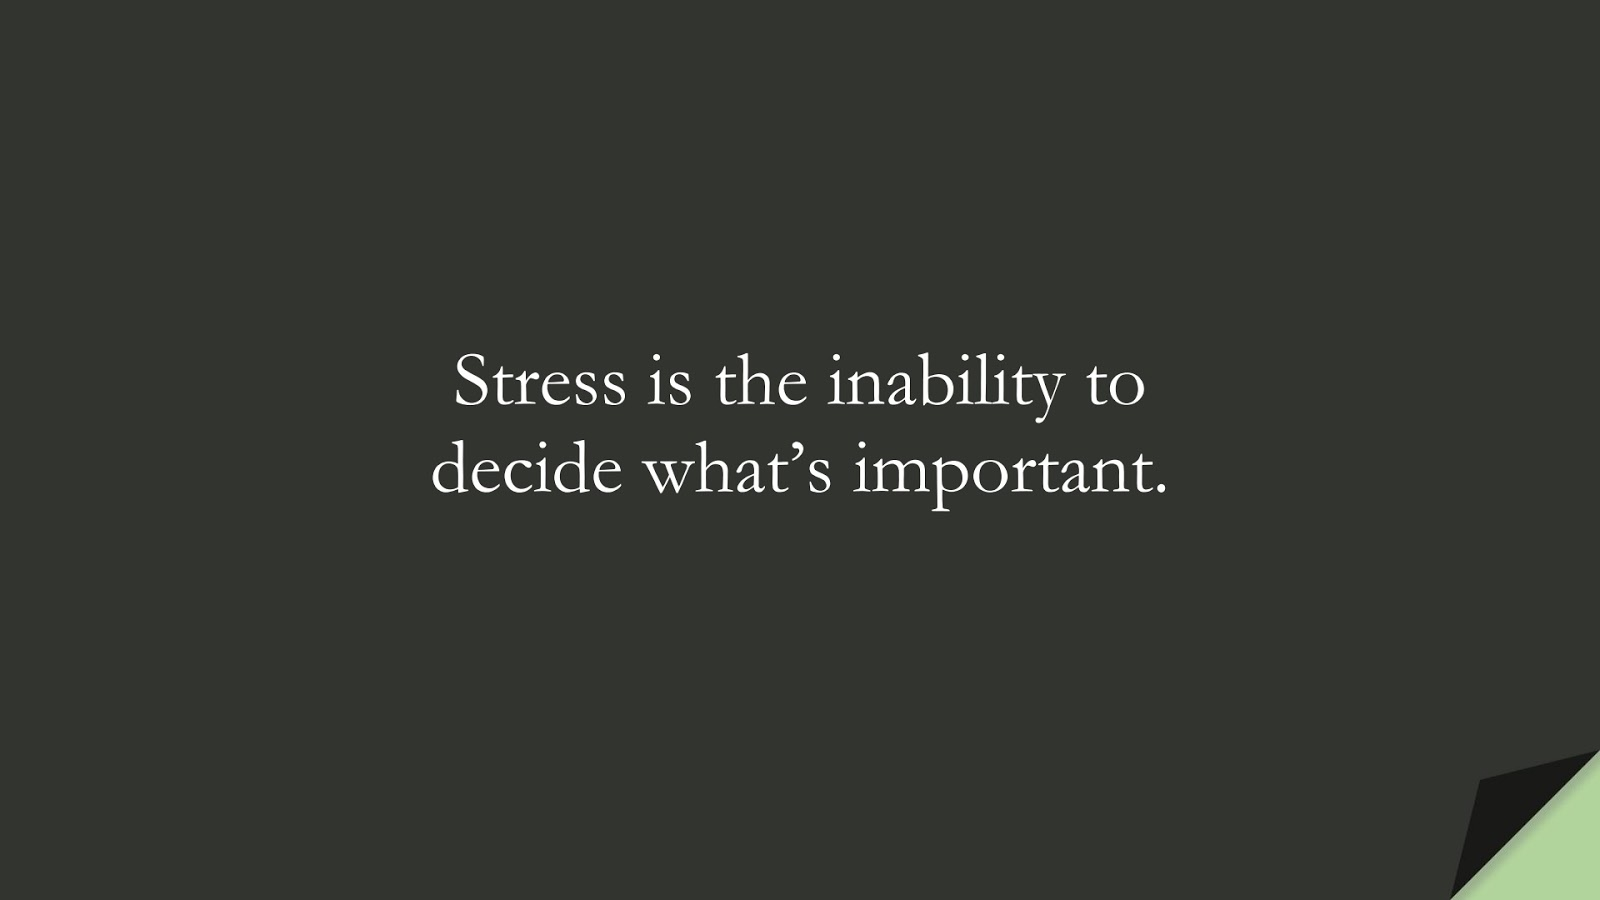 Stress is the inability to decide what's important.FALSE